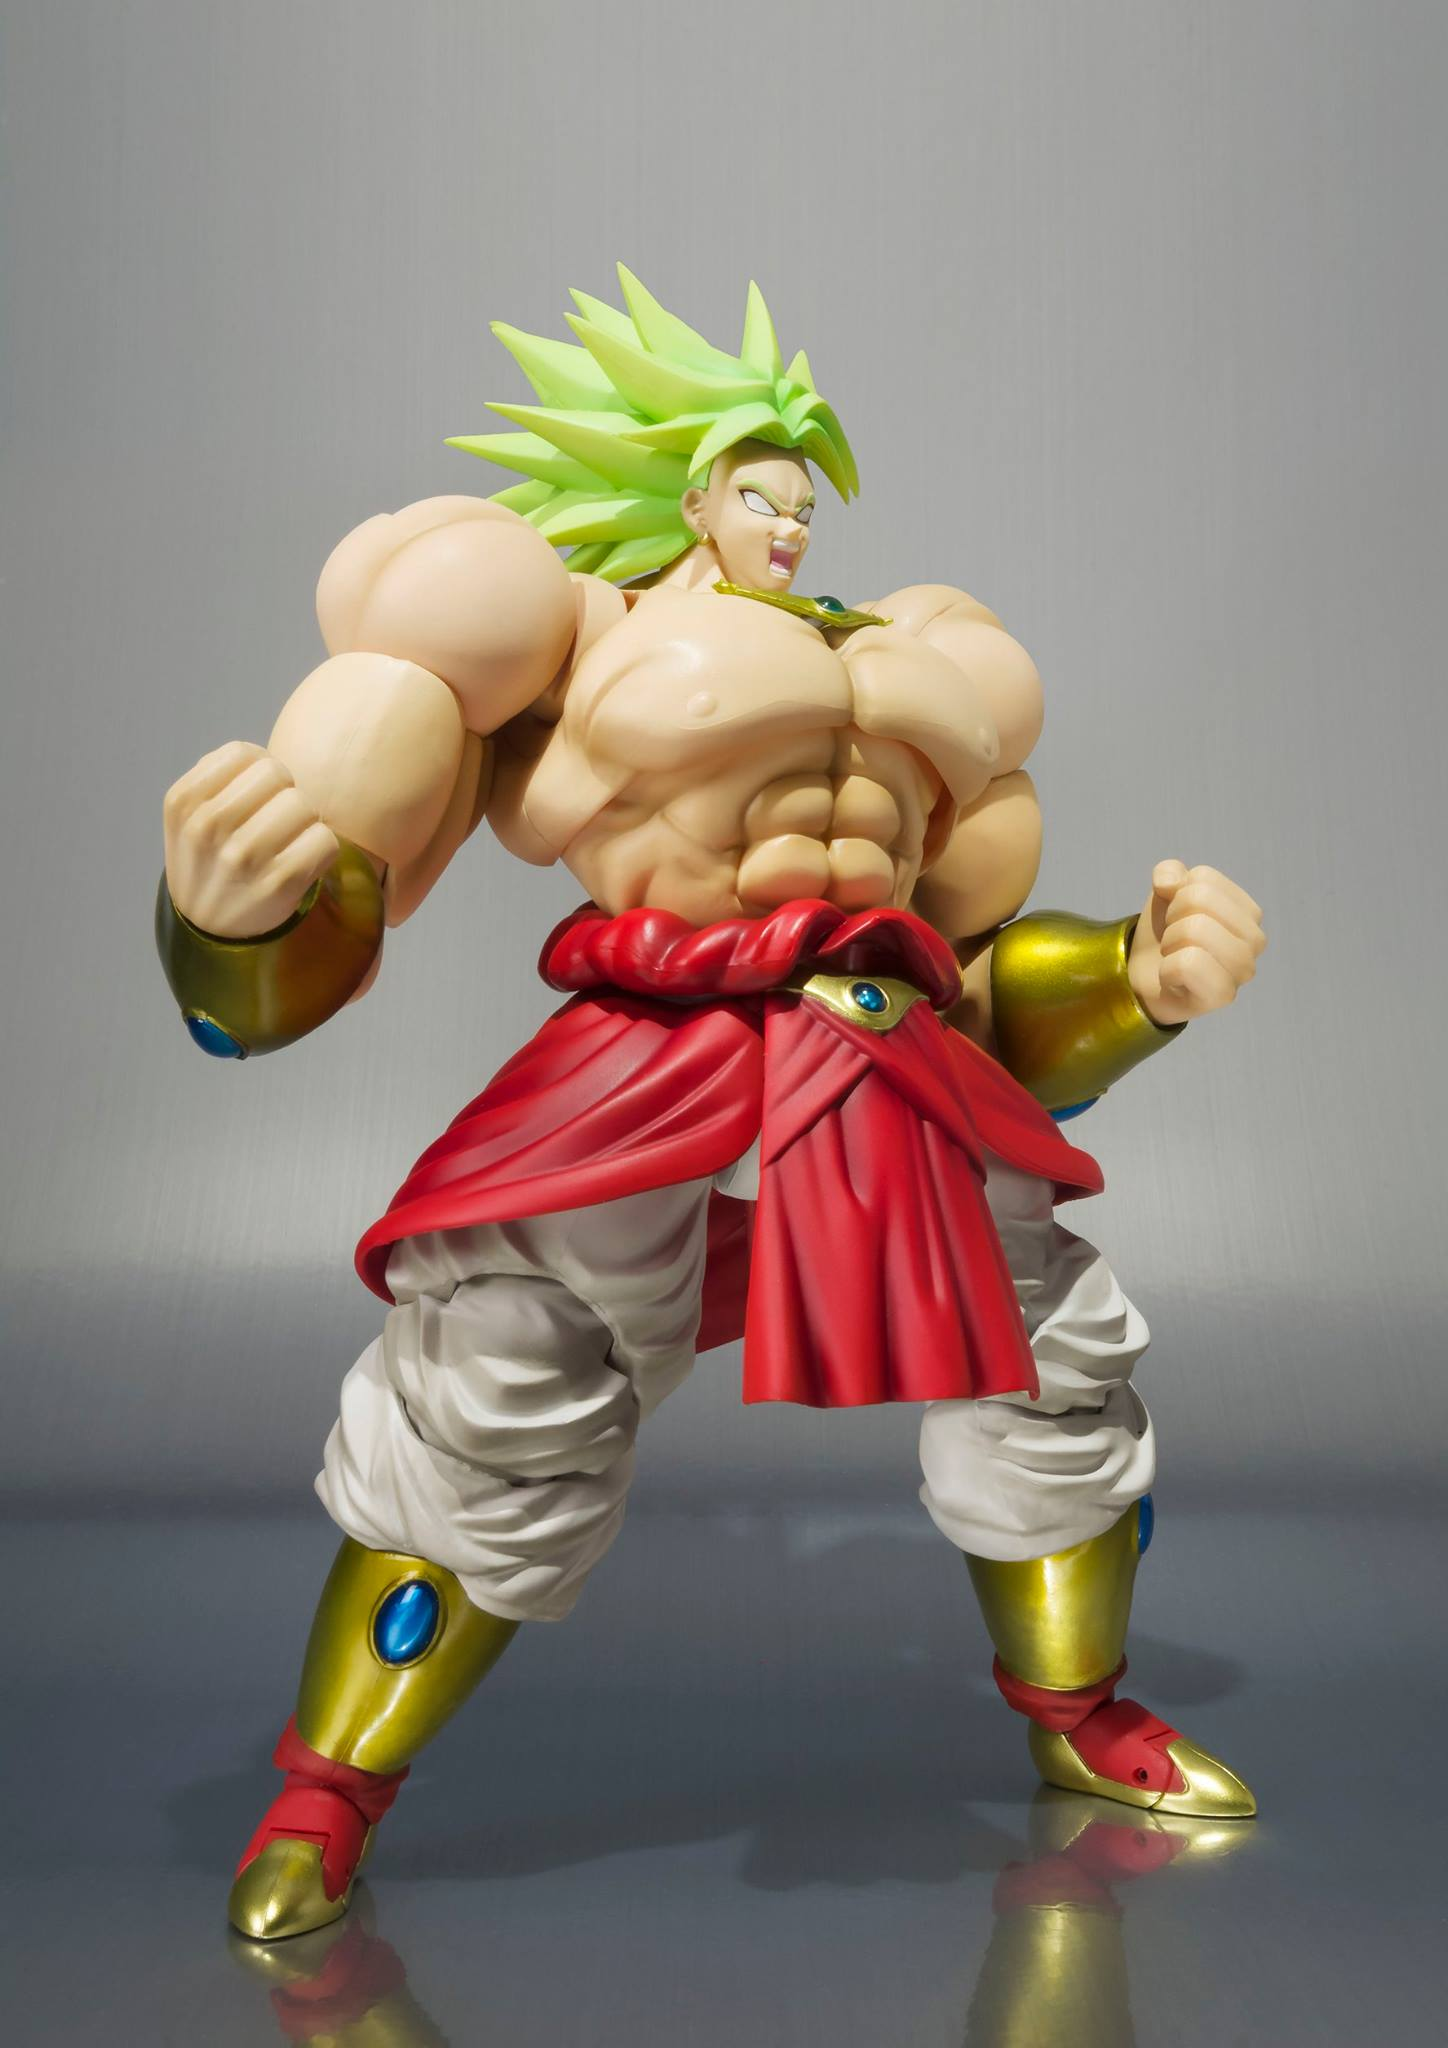 Hd Broly Wallpaper Sdcc 2016 Sh Figuarts Dragon Ball Z Broly Premium Color